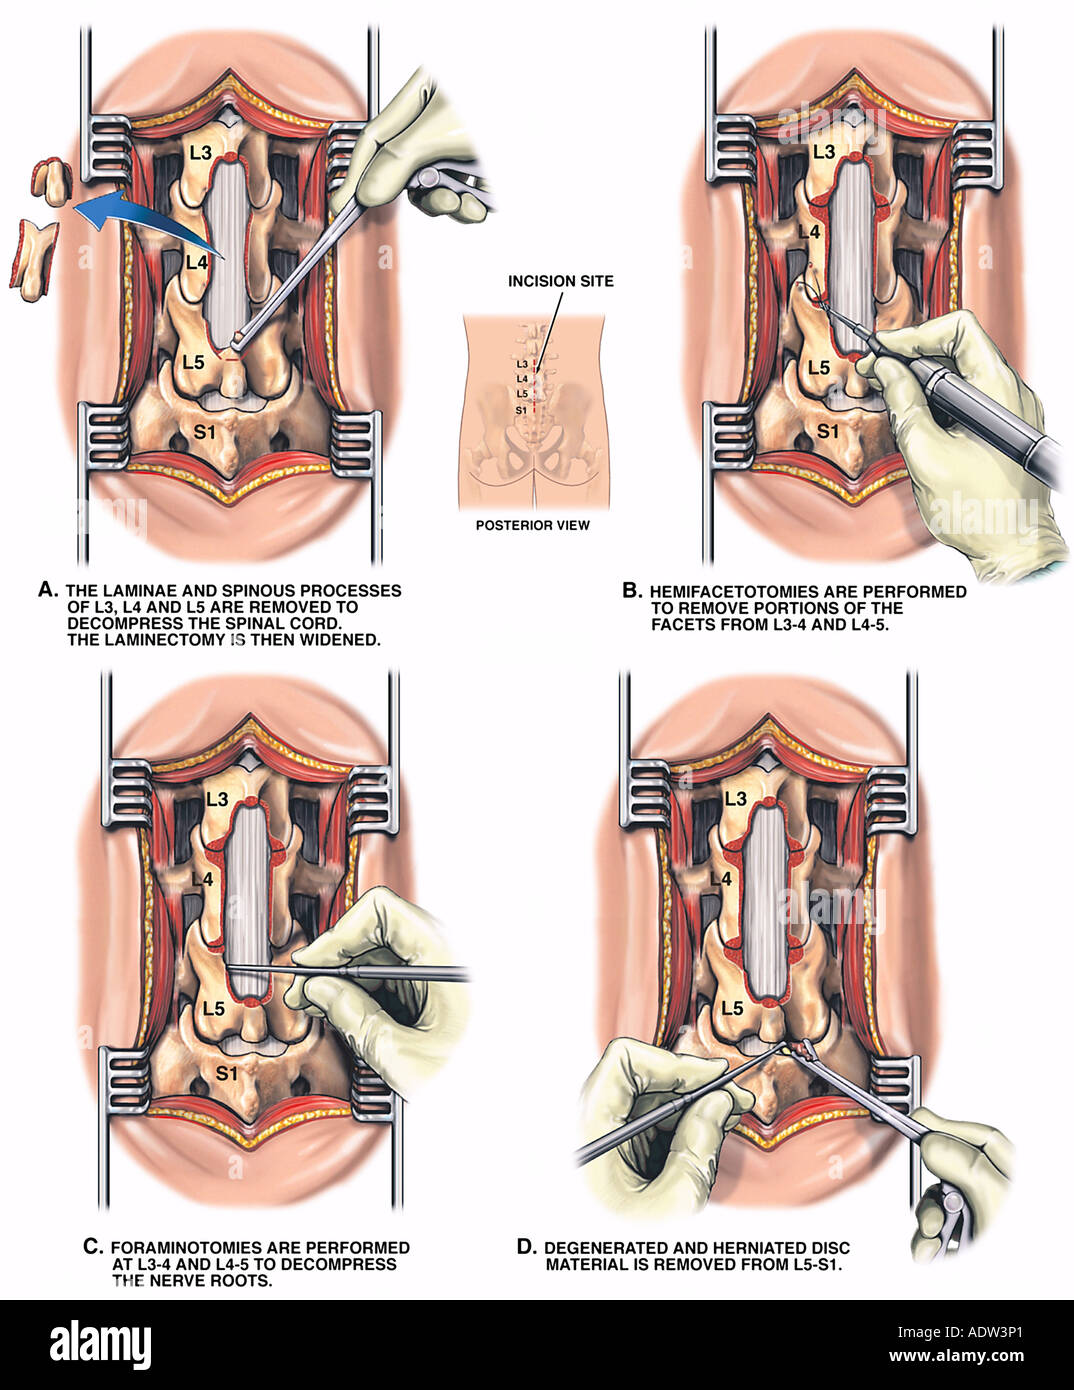 Lumbar Laminectomy Stock Photos Lumbar Laminectomy Stock Images